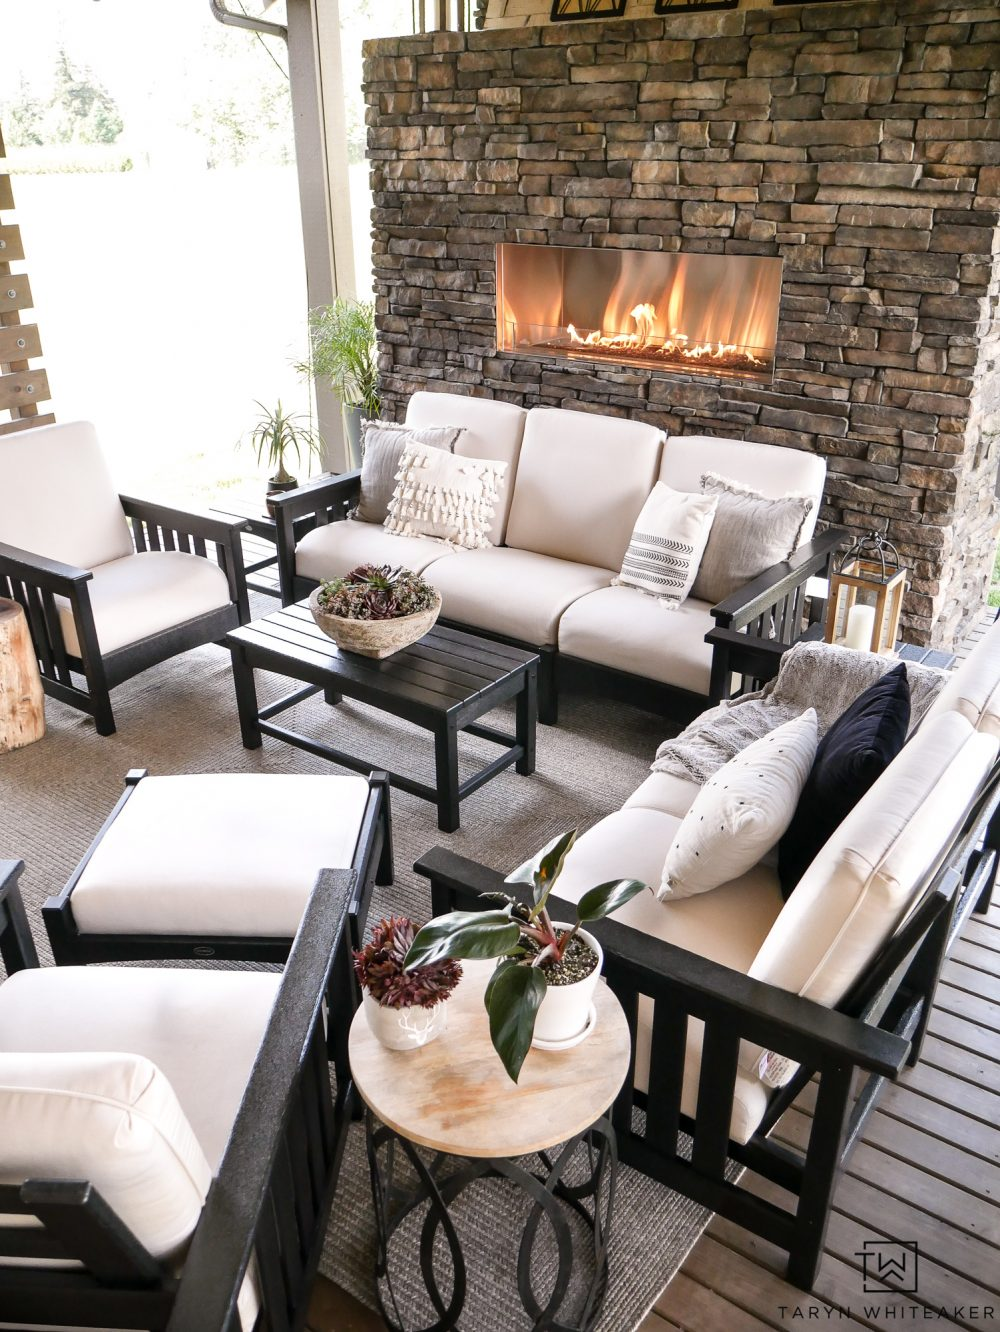 Luxurious outdoor living space with outdoor stone fireplace and beautiful black and white patio furniture.